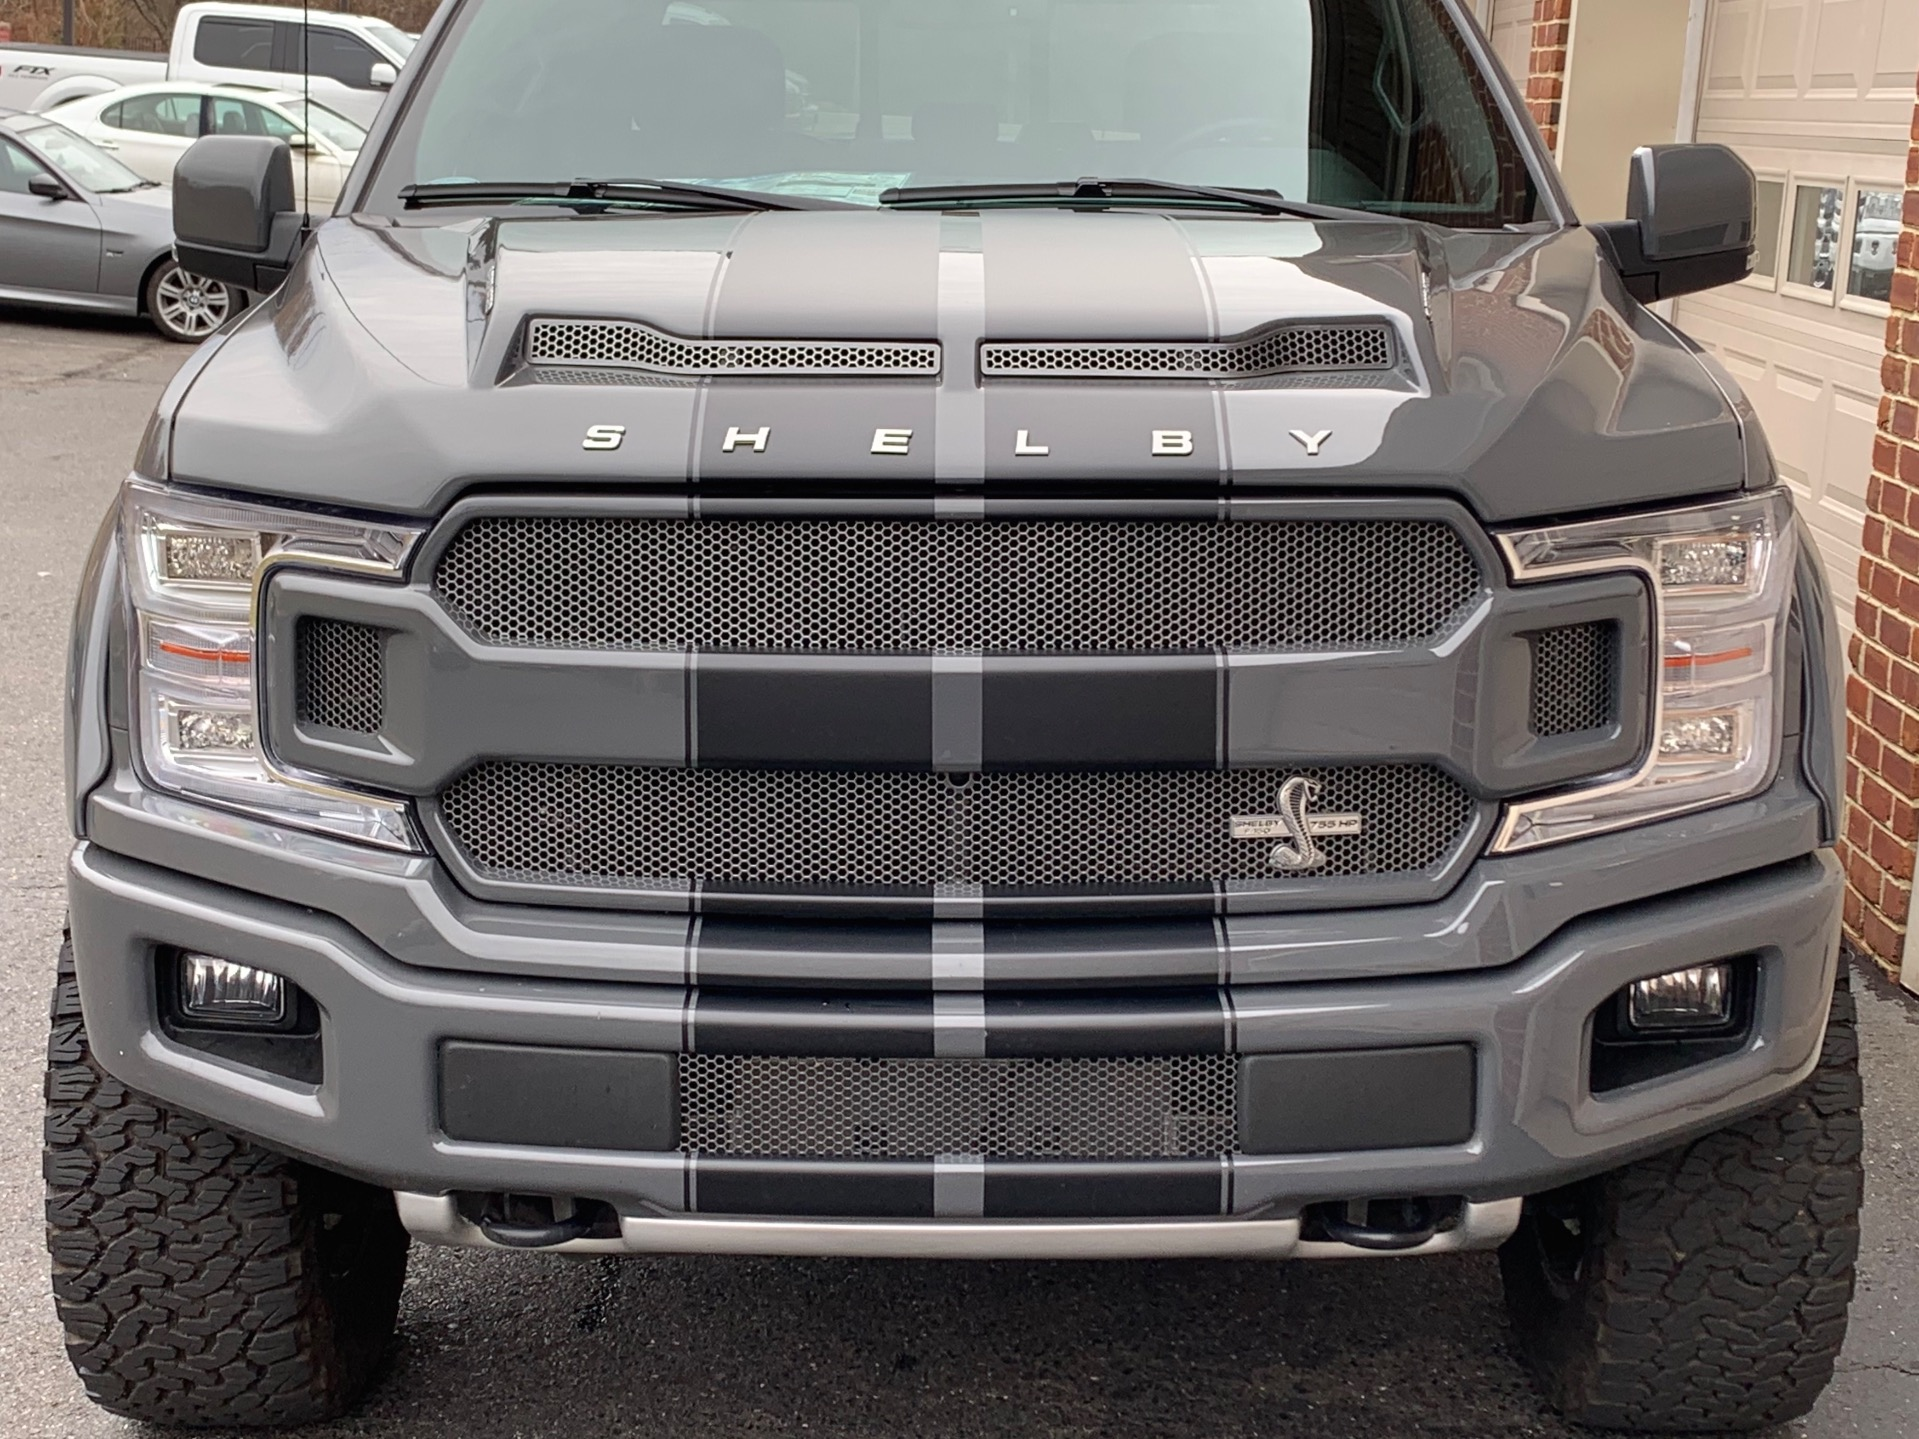 Used-2019-Ford-F-150-SHELBY